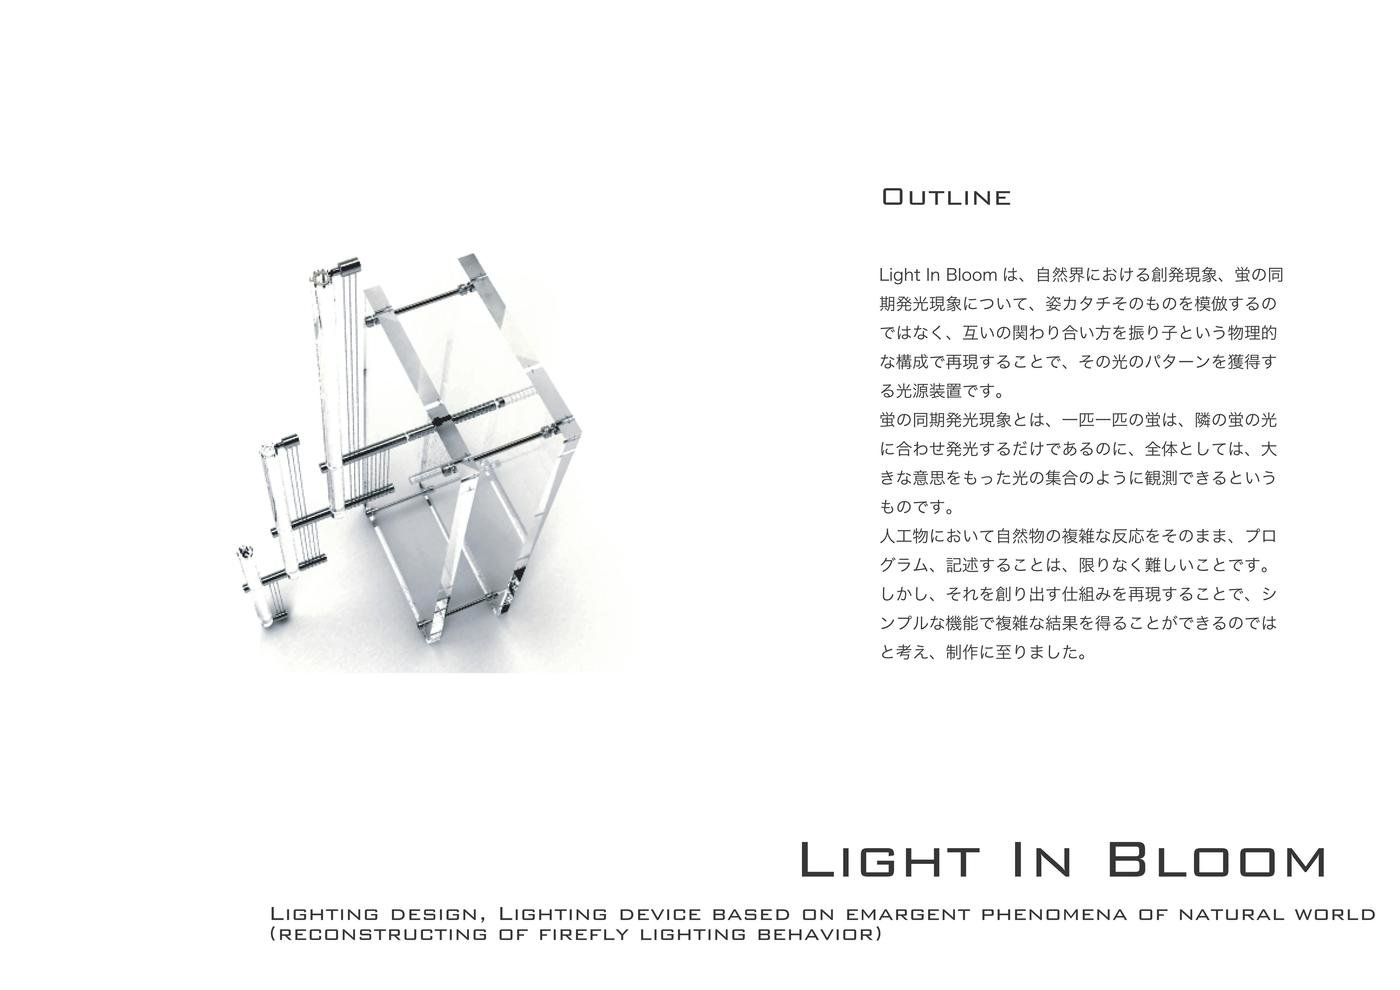 Light In Bloom イメージ 4